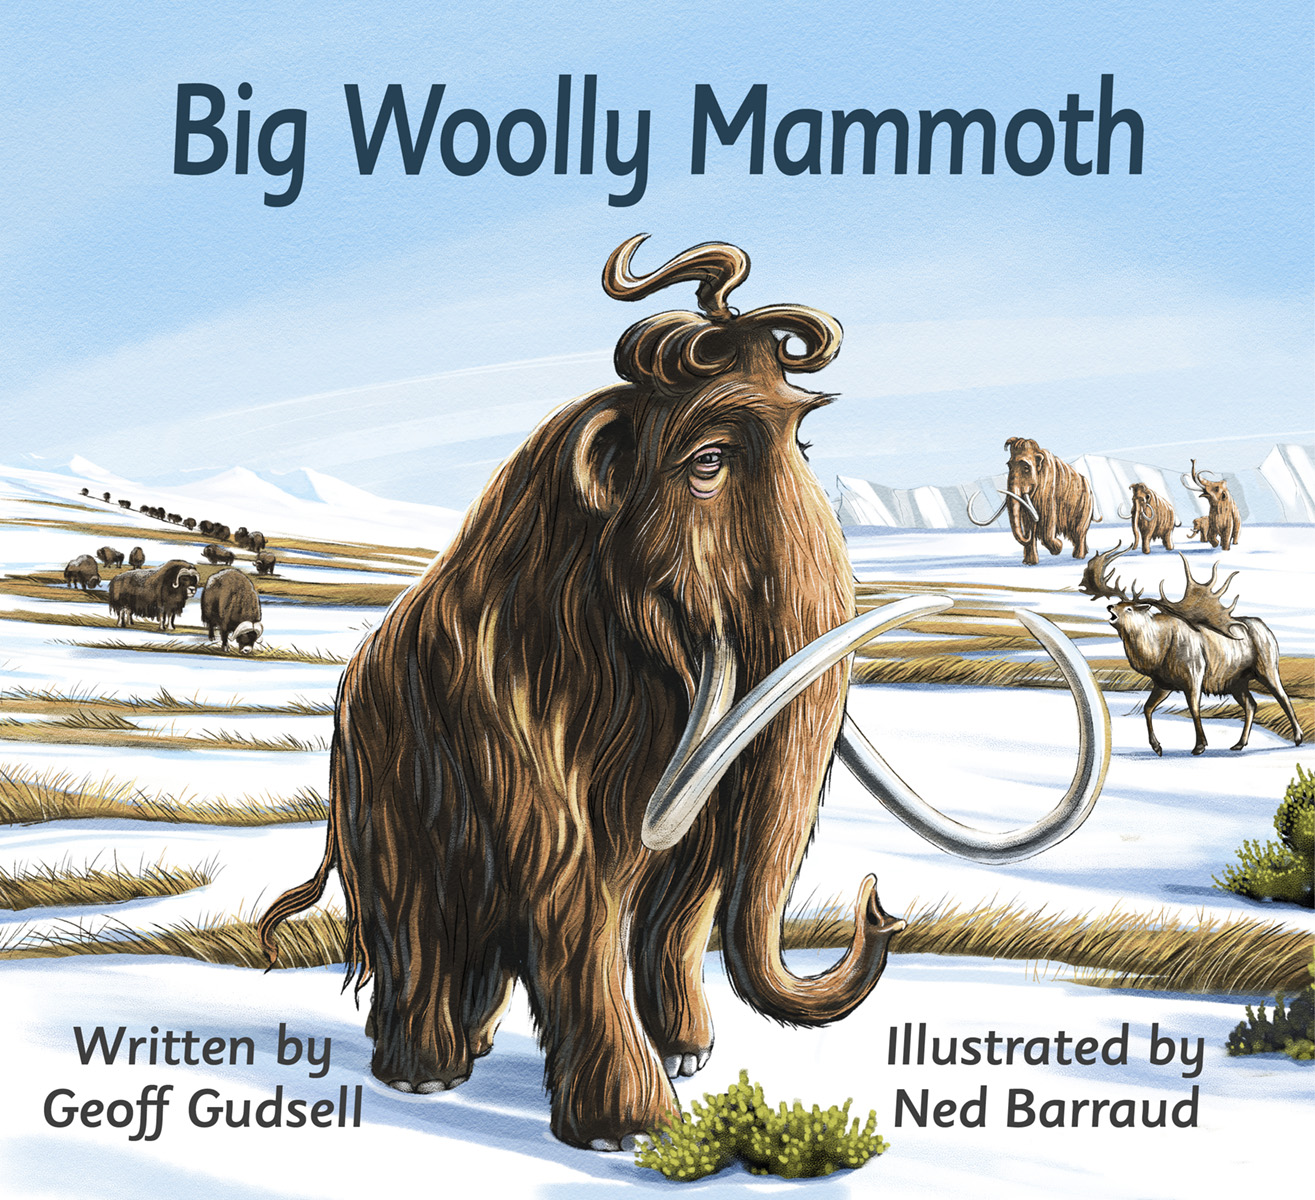 Big Woolly Mammoth